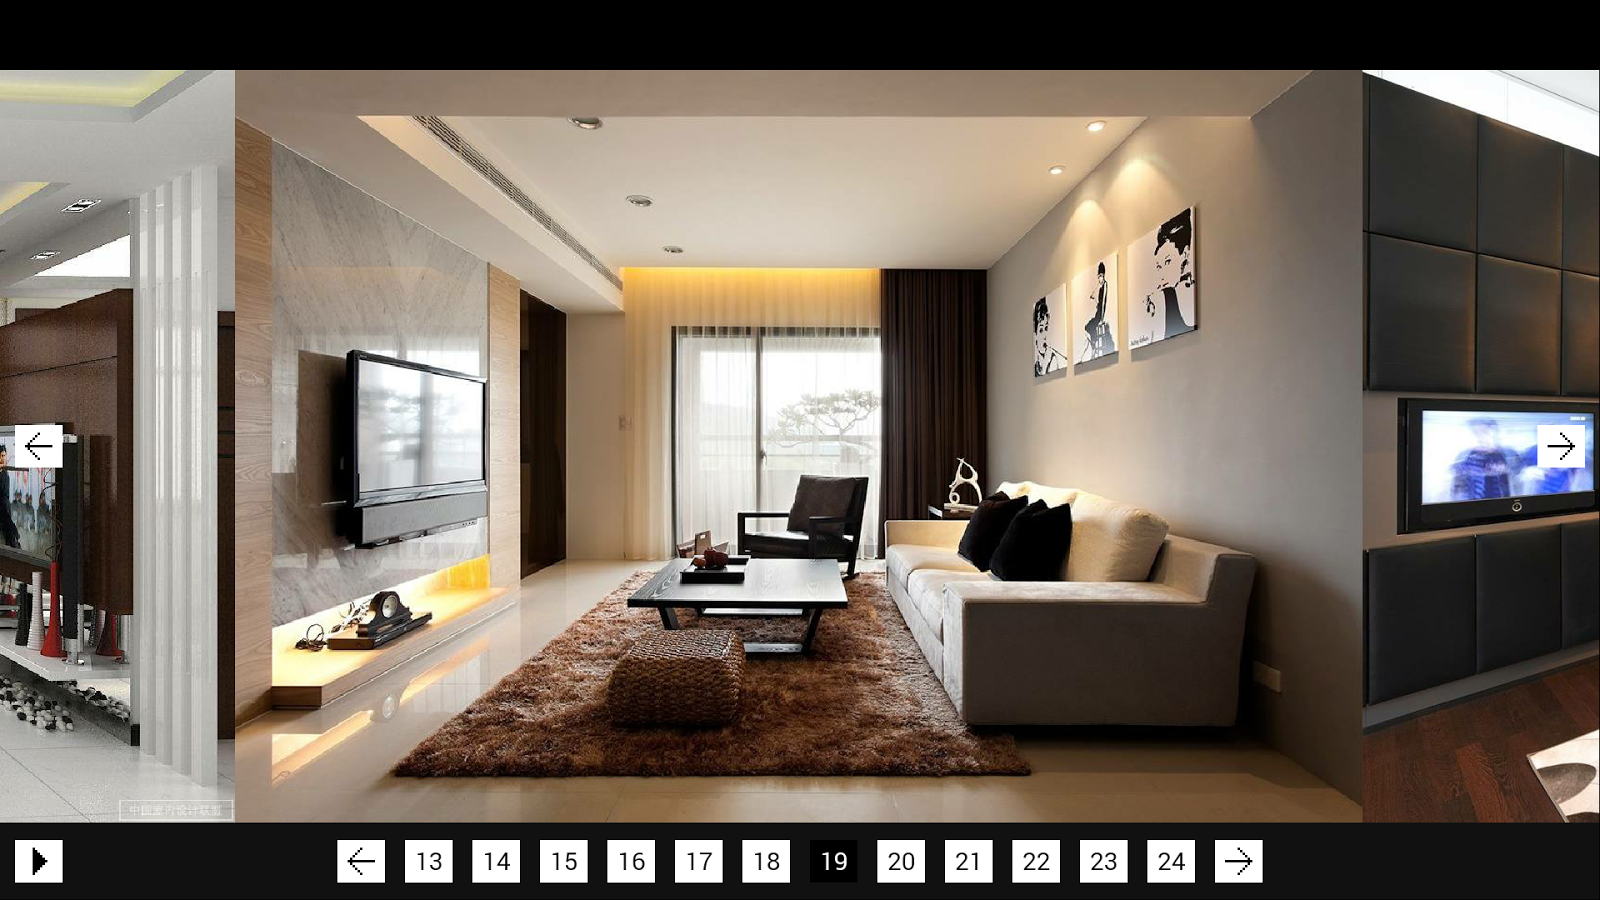 Home interior design android apps on google play for Interior house design pictures